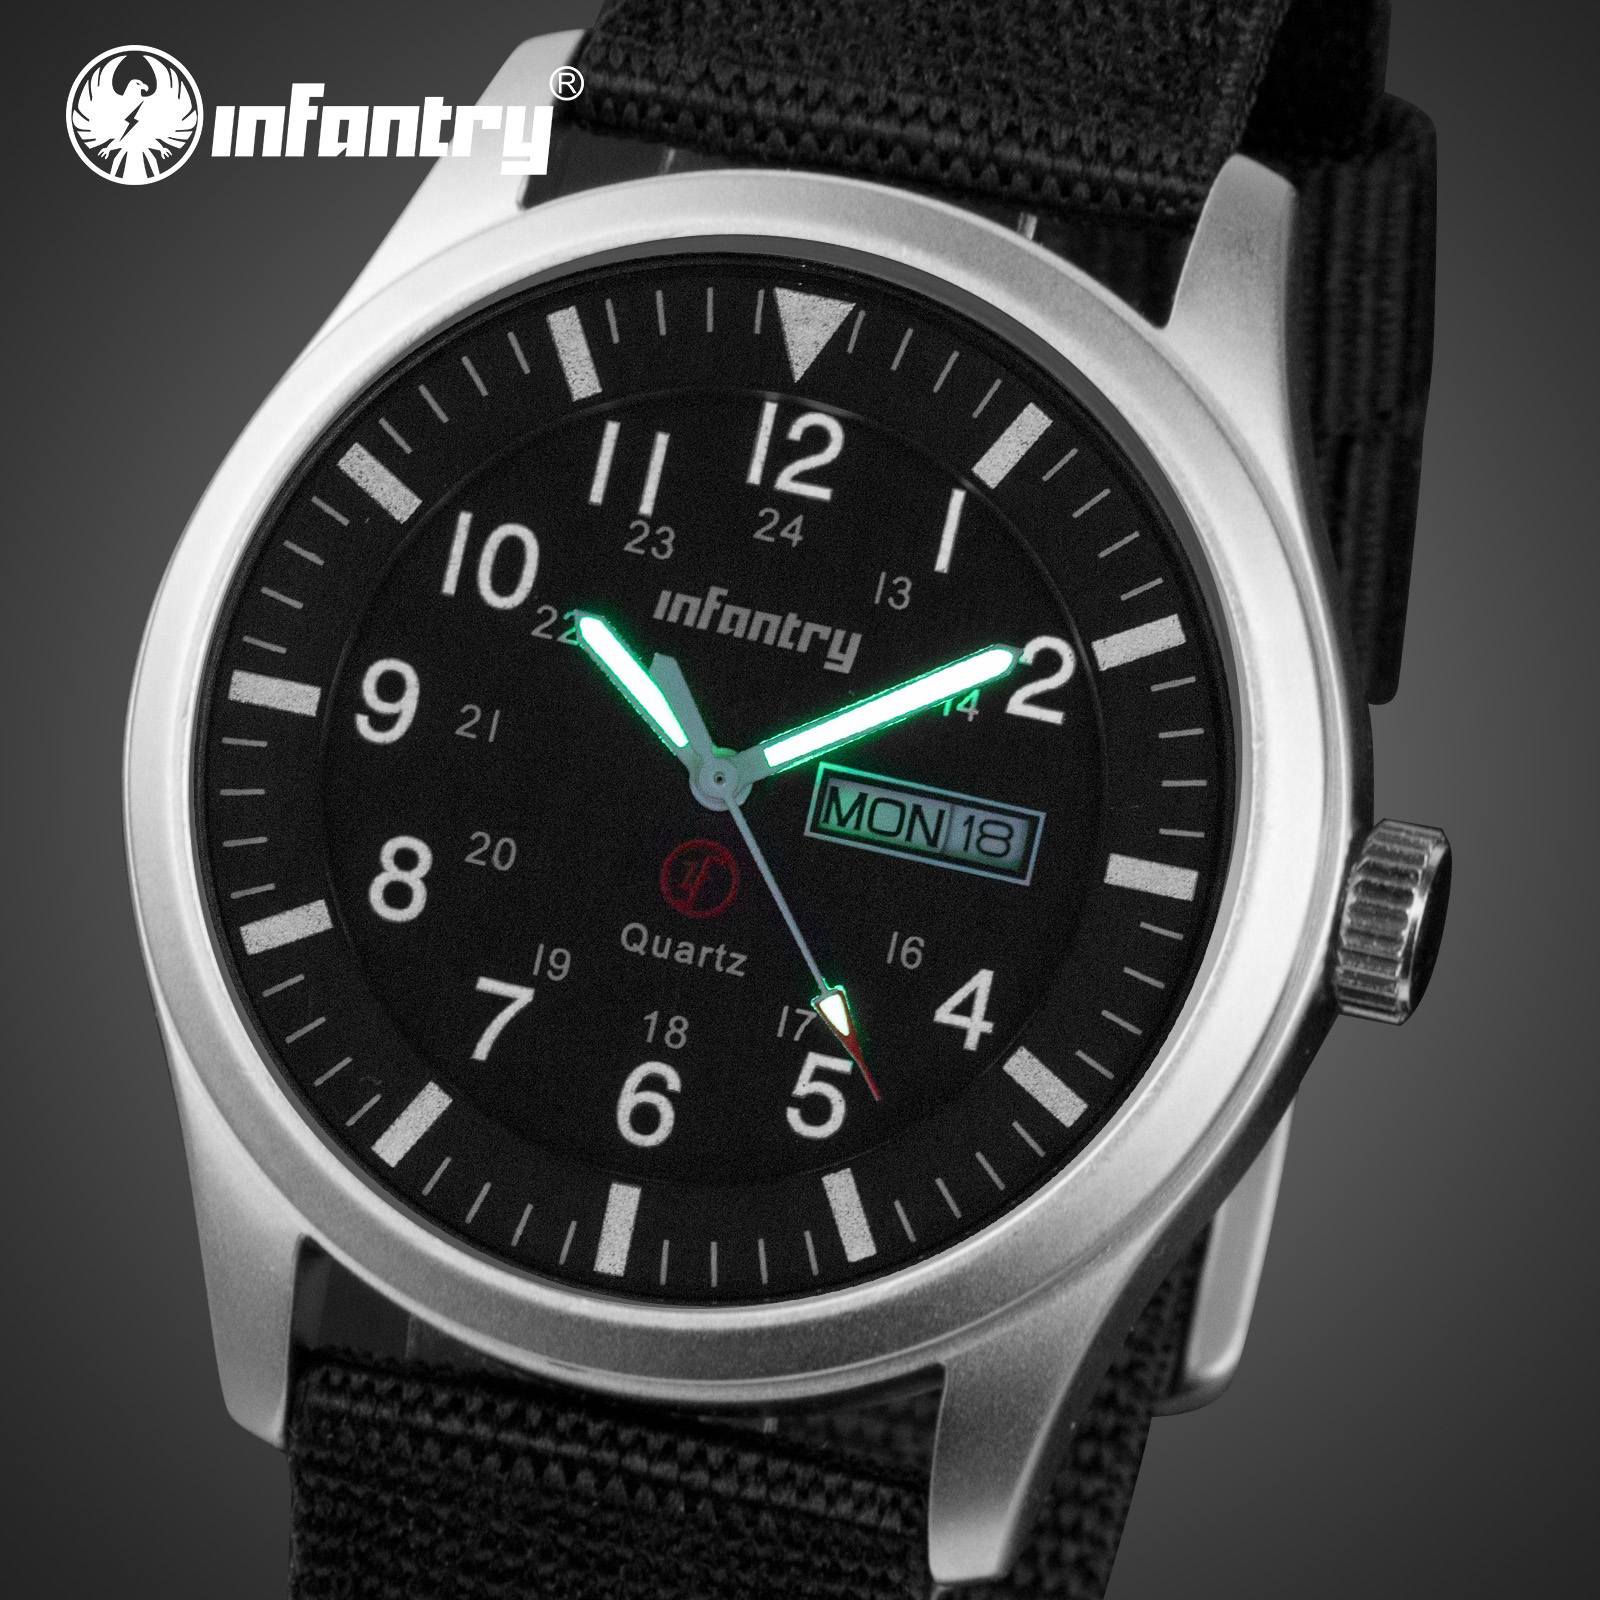 INFANTRY Mens Watches Top Brand Luxury Military Watch Men Date Waterproof Black Nylon Sport Watches For Men Relogio Masculino